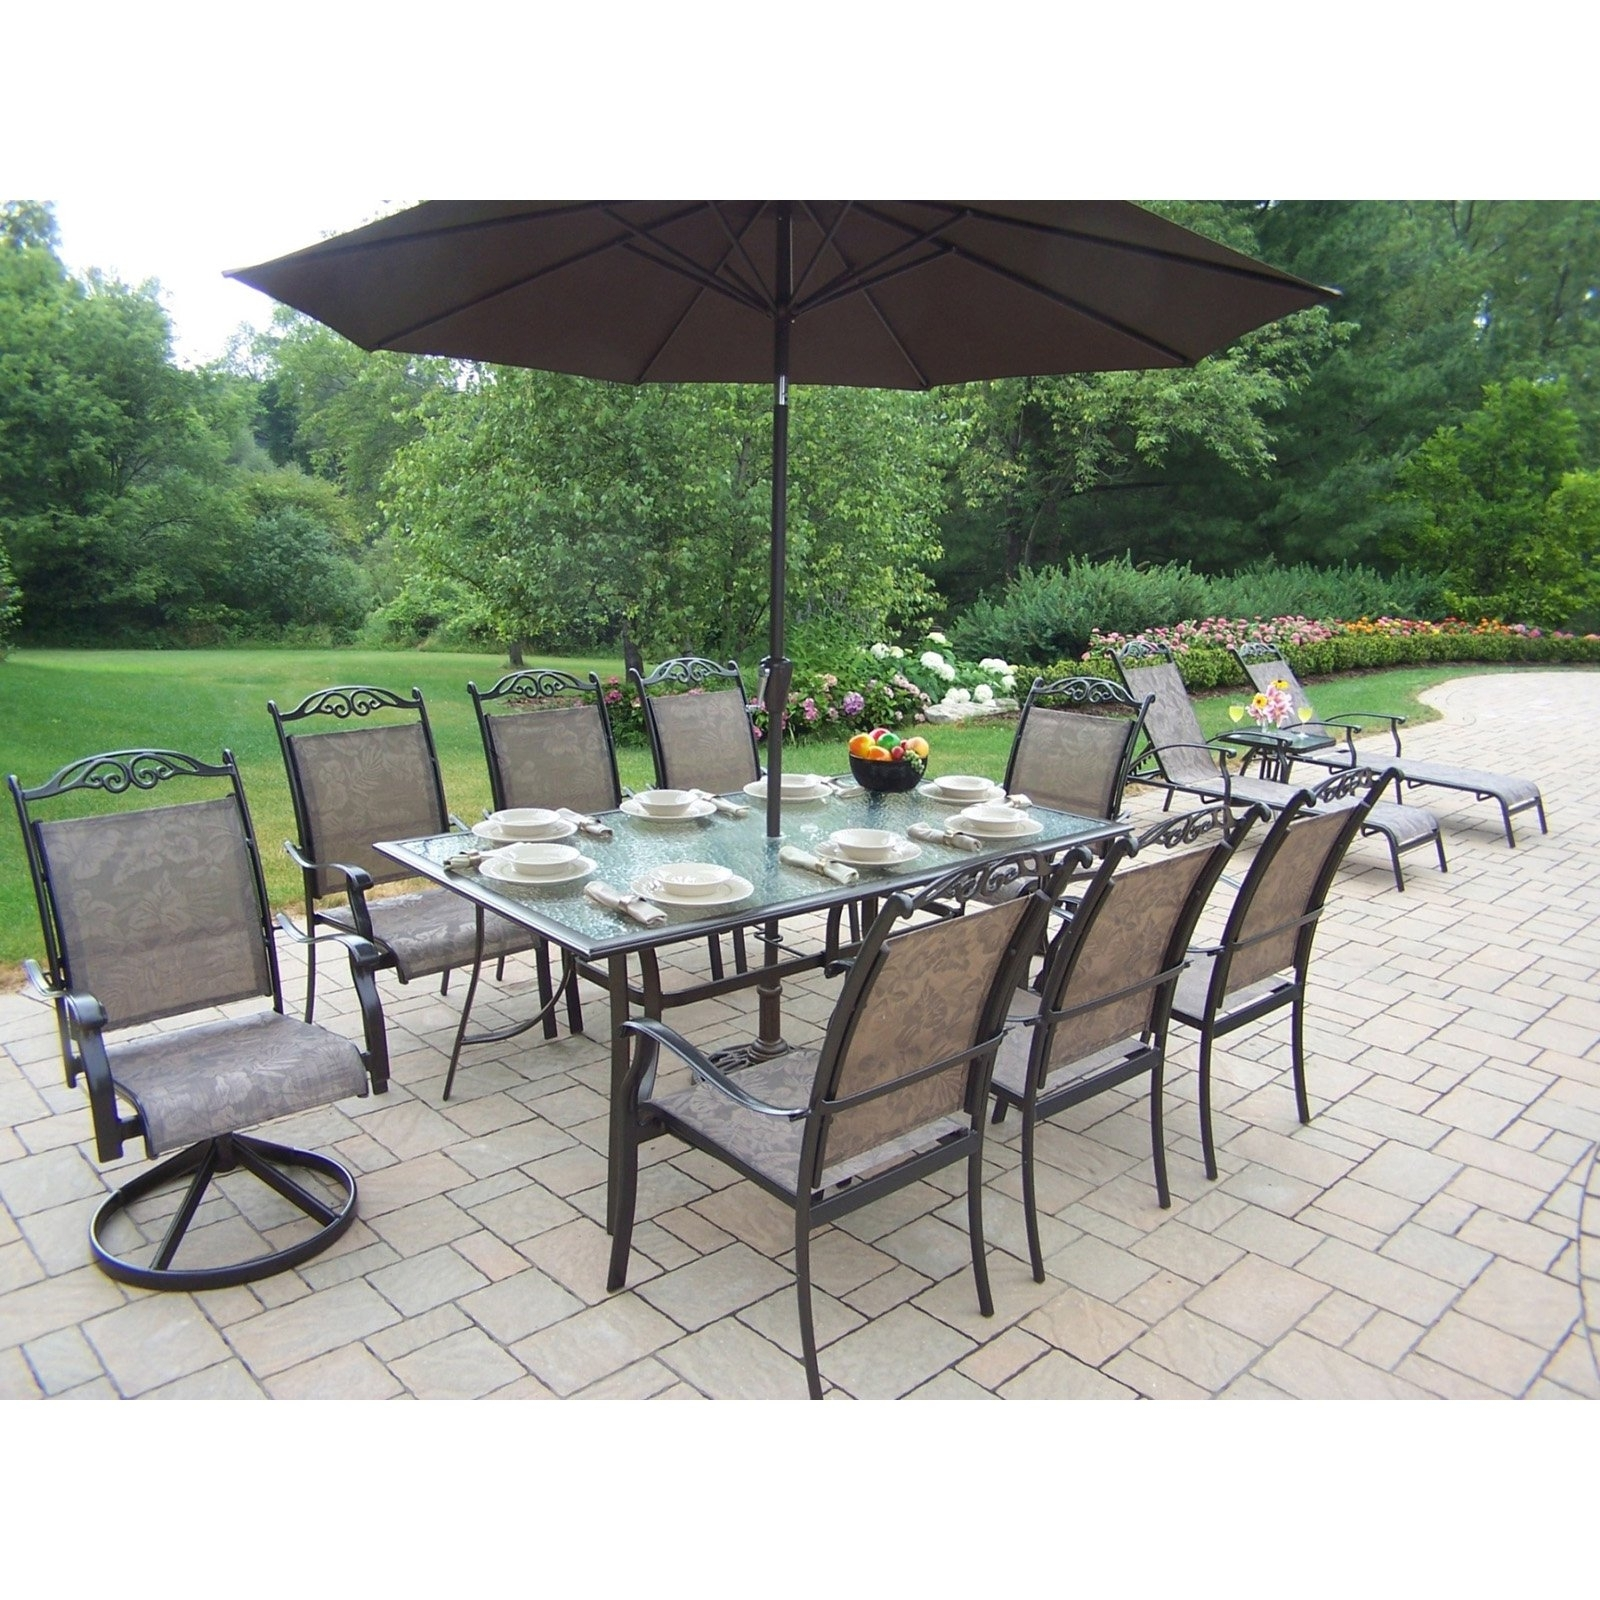 Most Recently Released Patio Tables With Umbrellas With Oakland Living Cascade Patio Dining Set With Umbrella And Stand (View 4 of 20)